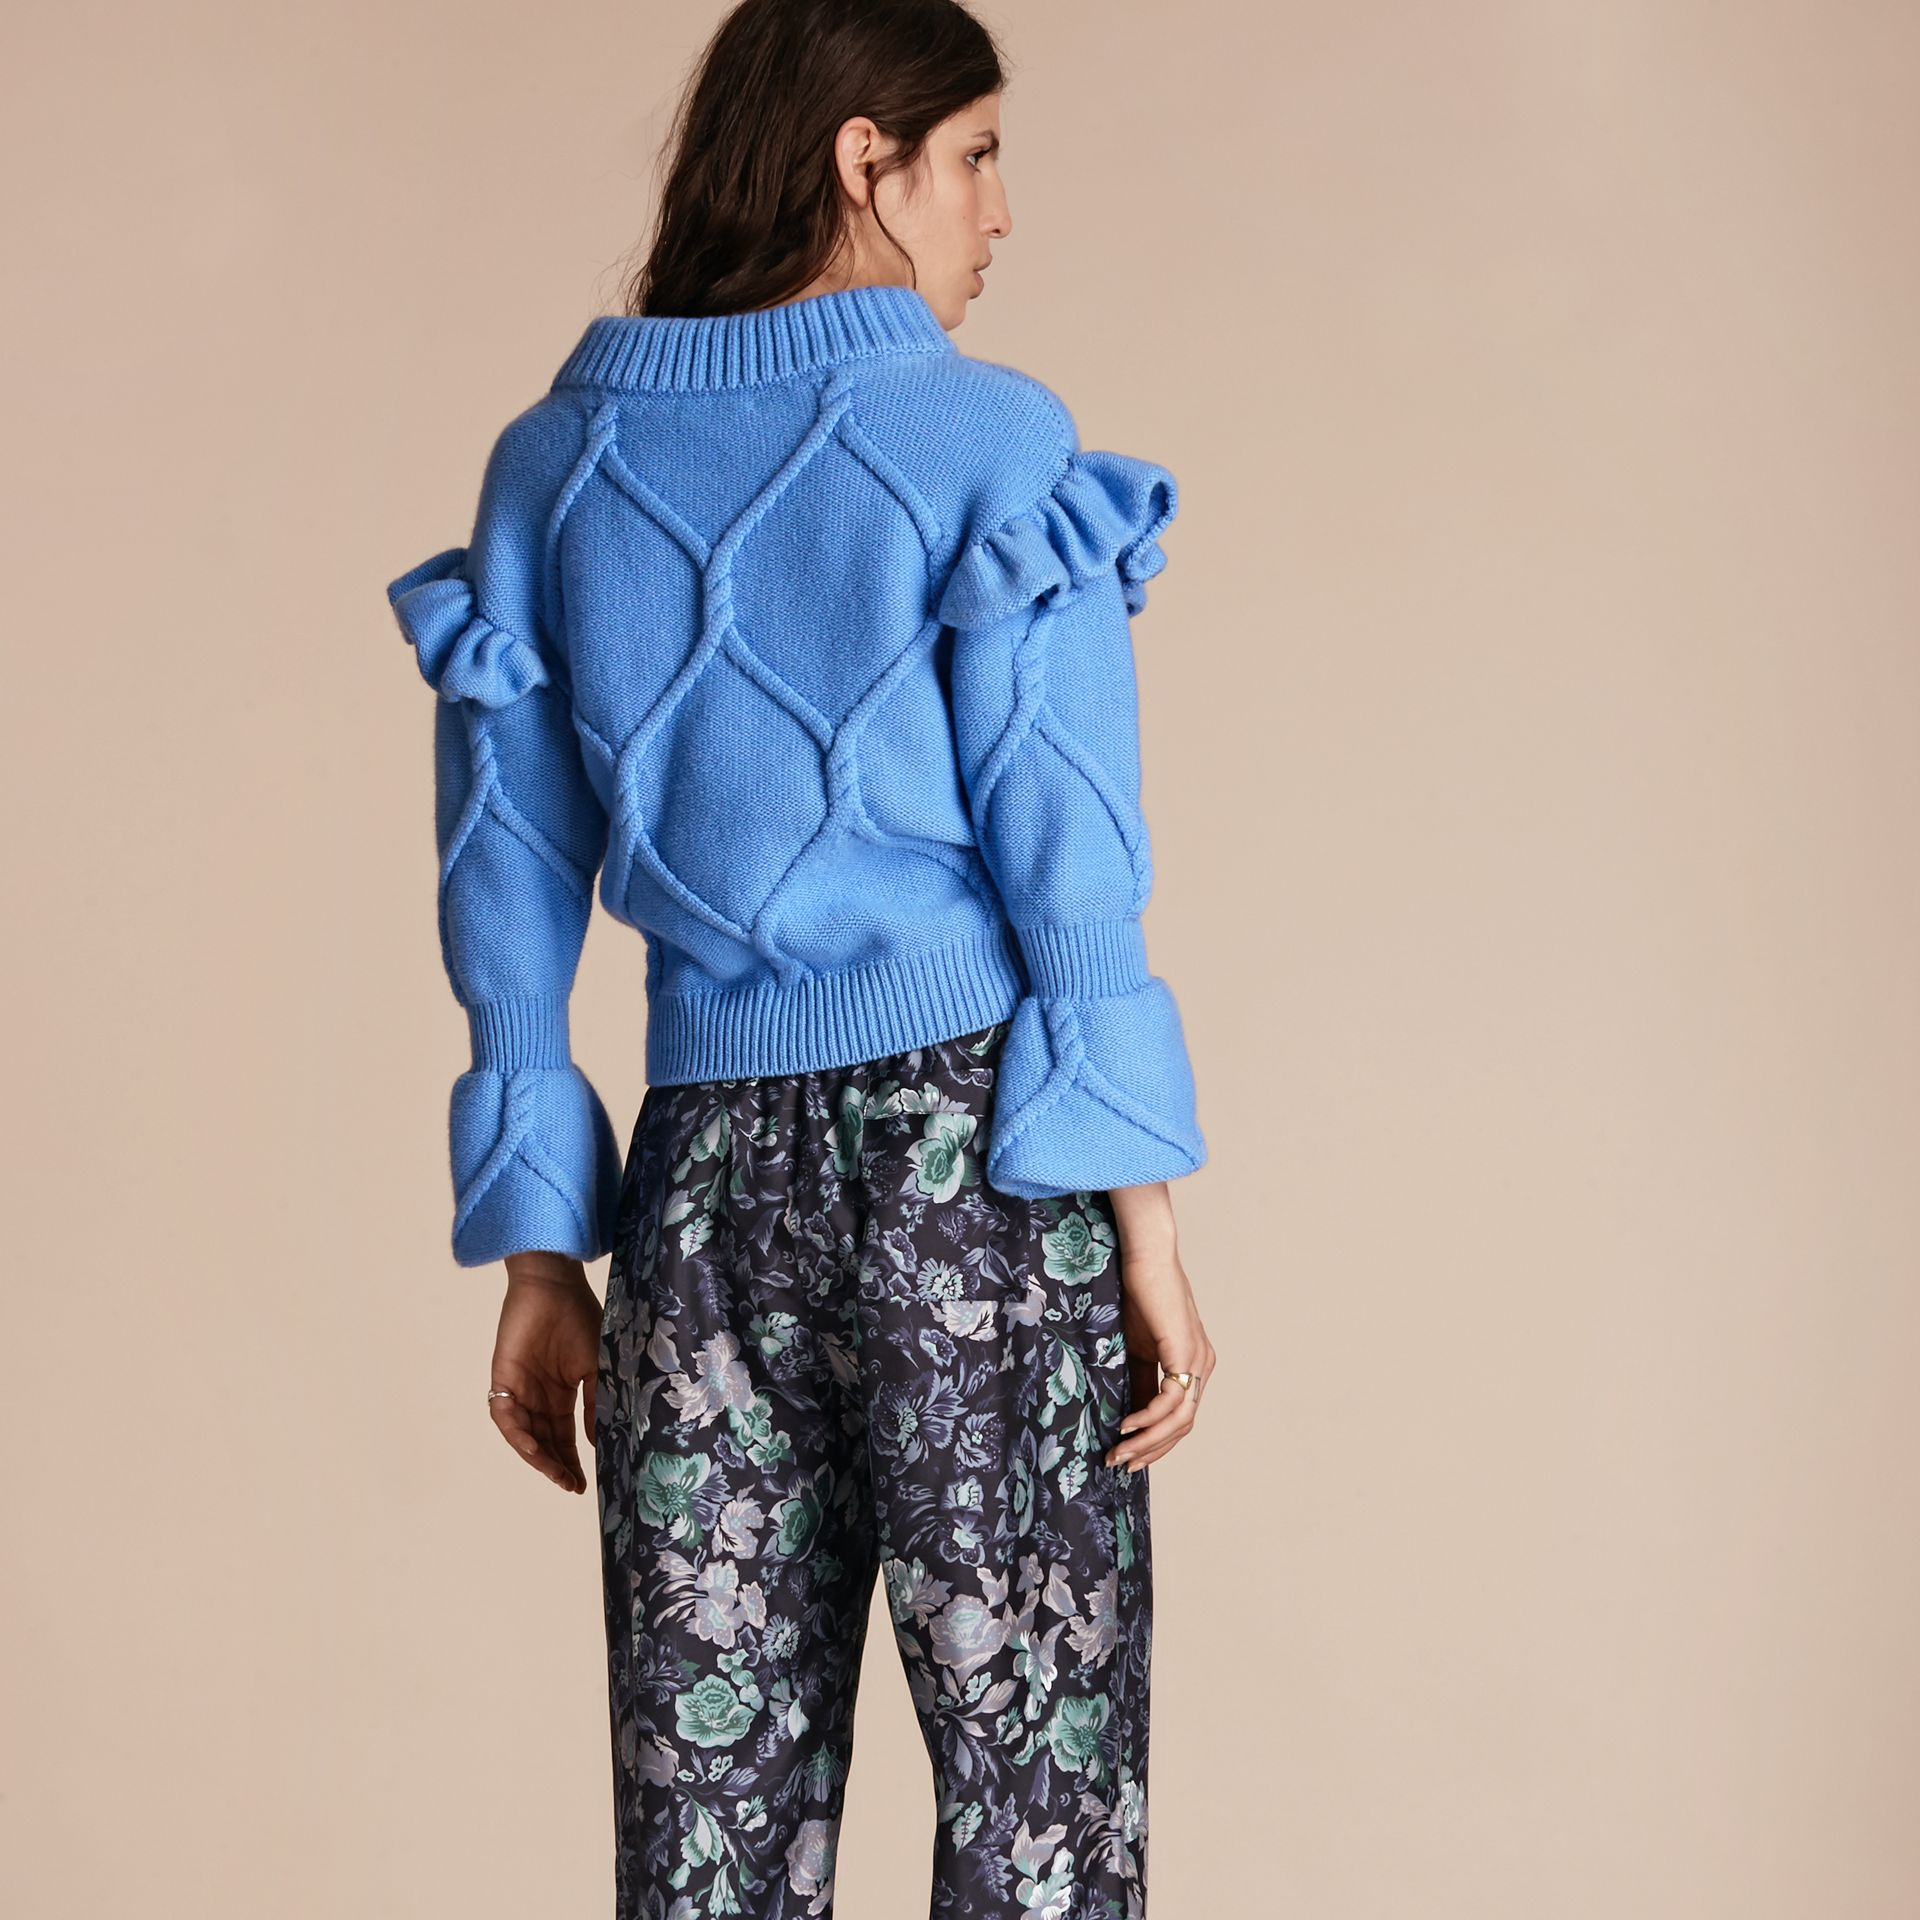 Hydrangia blue Cable Knit Wool Cashmere Sweater with Ruffle Bell Sleeves Hydrangia Blue - gallery image 3